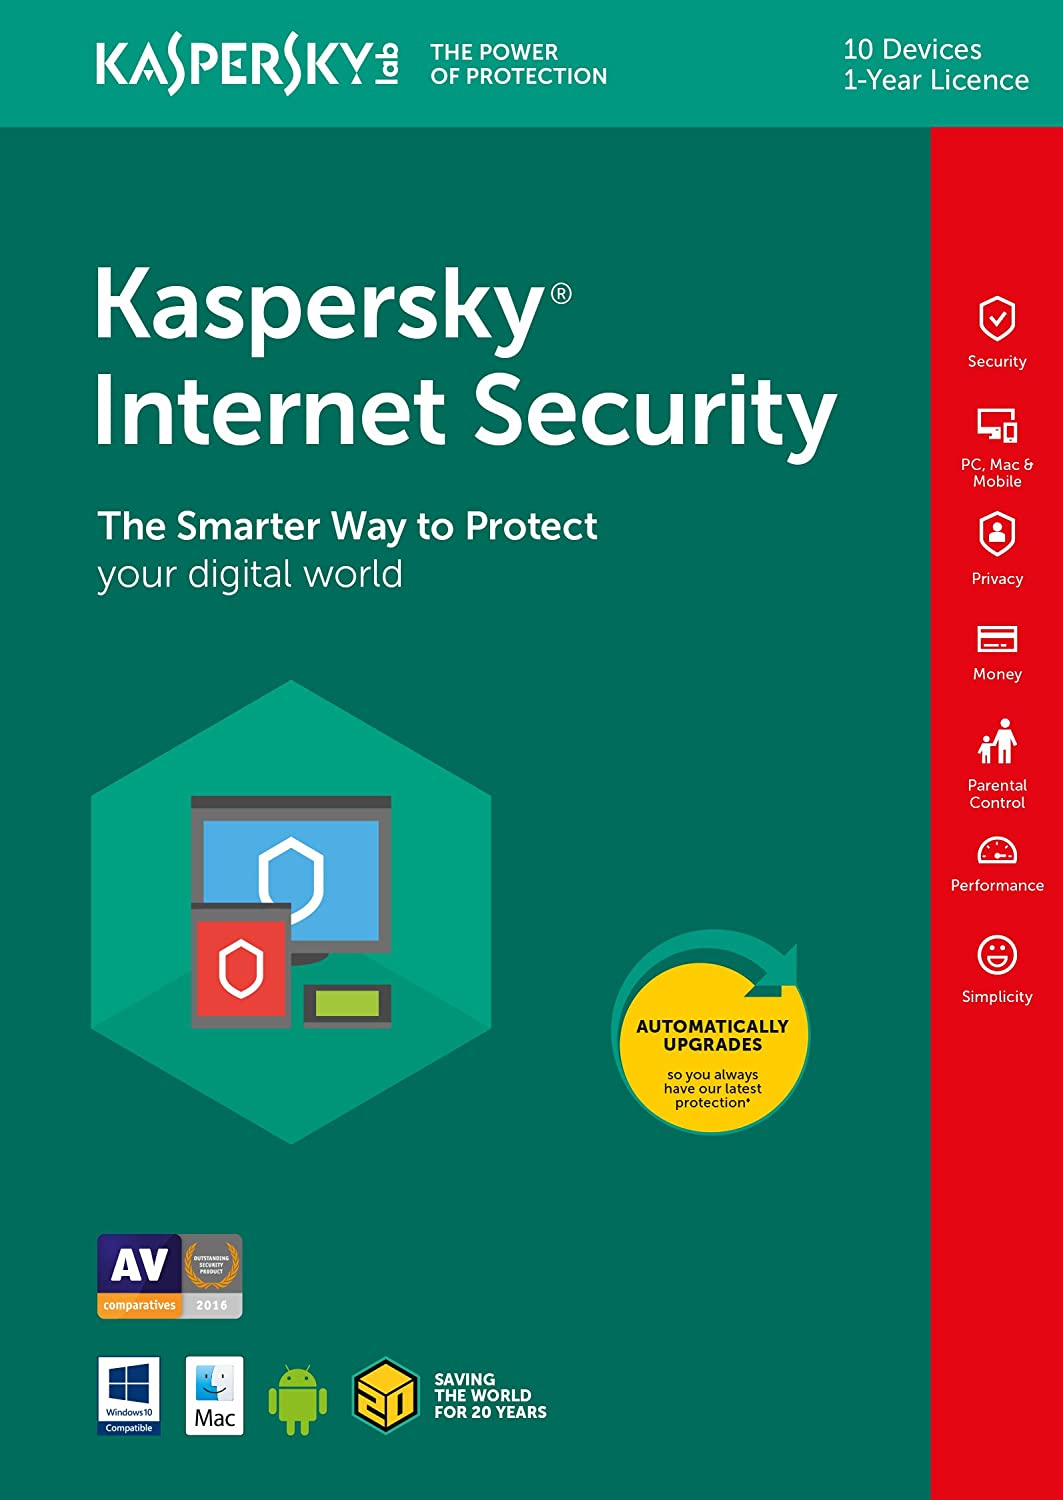 activation code for kaspersky android